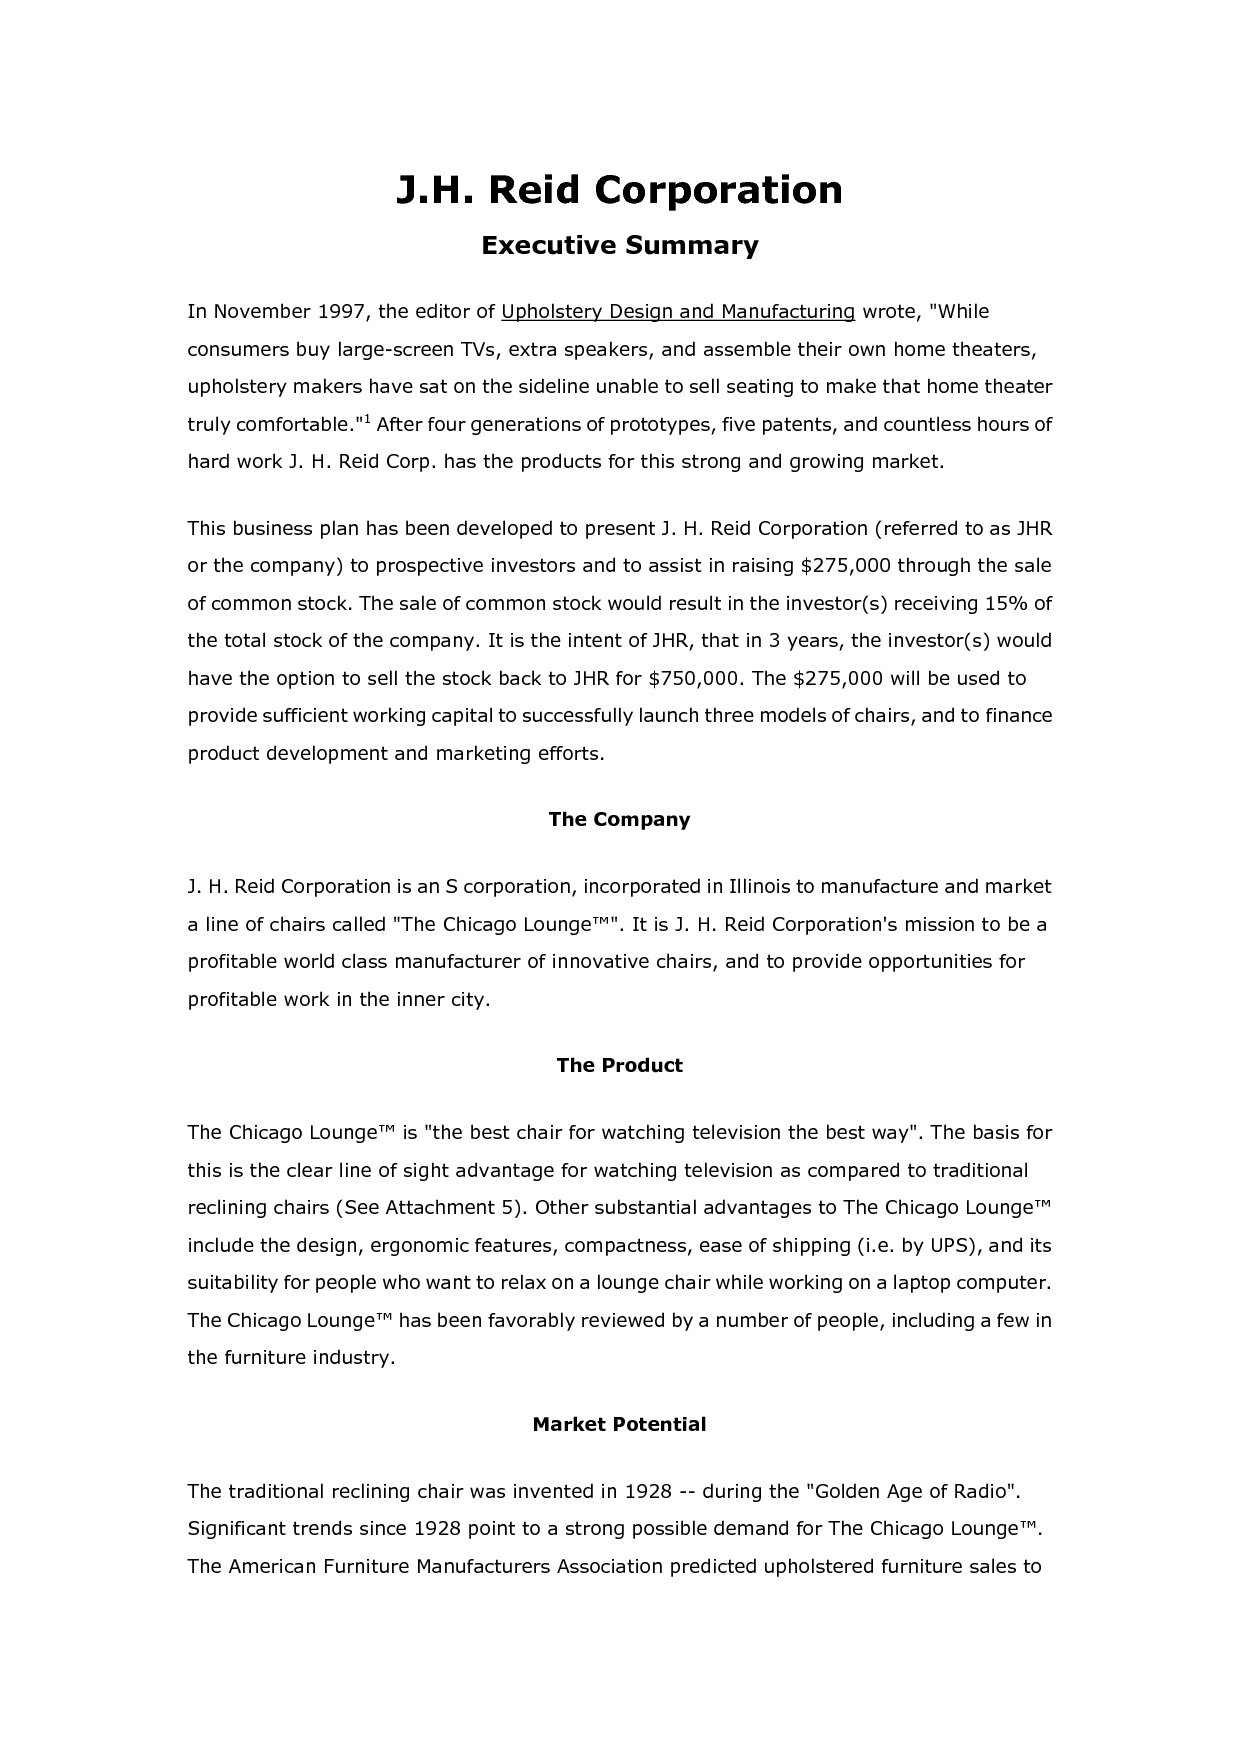 proposal essay a modest proposal summary essay topbuypaperessay us